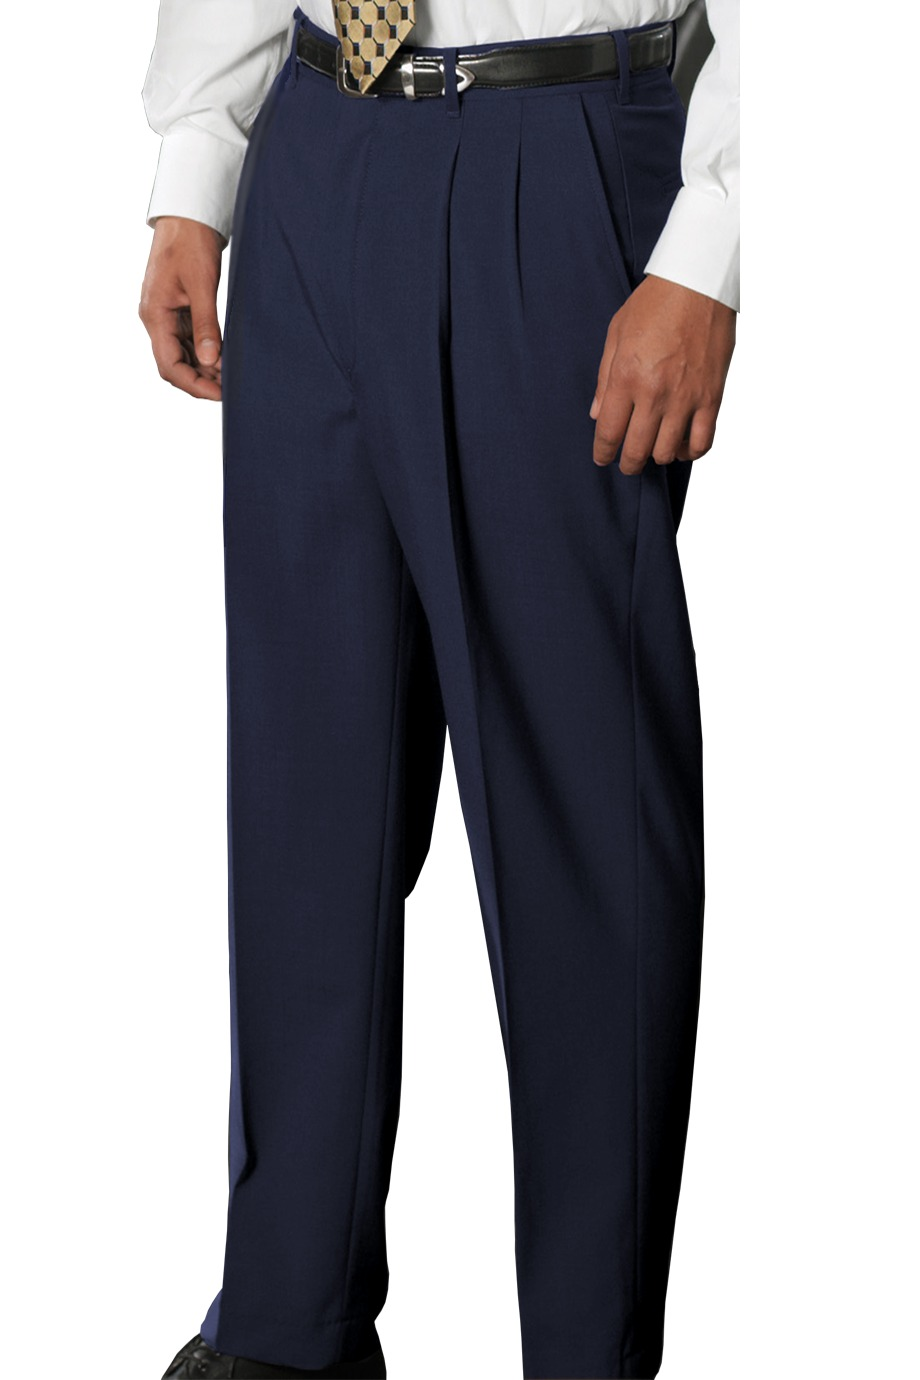 Edwards Garment 2680 - Men's Wool Blend Pleated Dress Pant